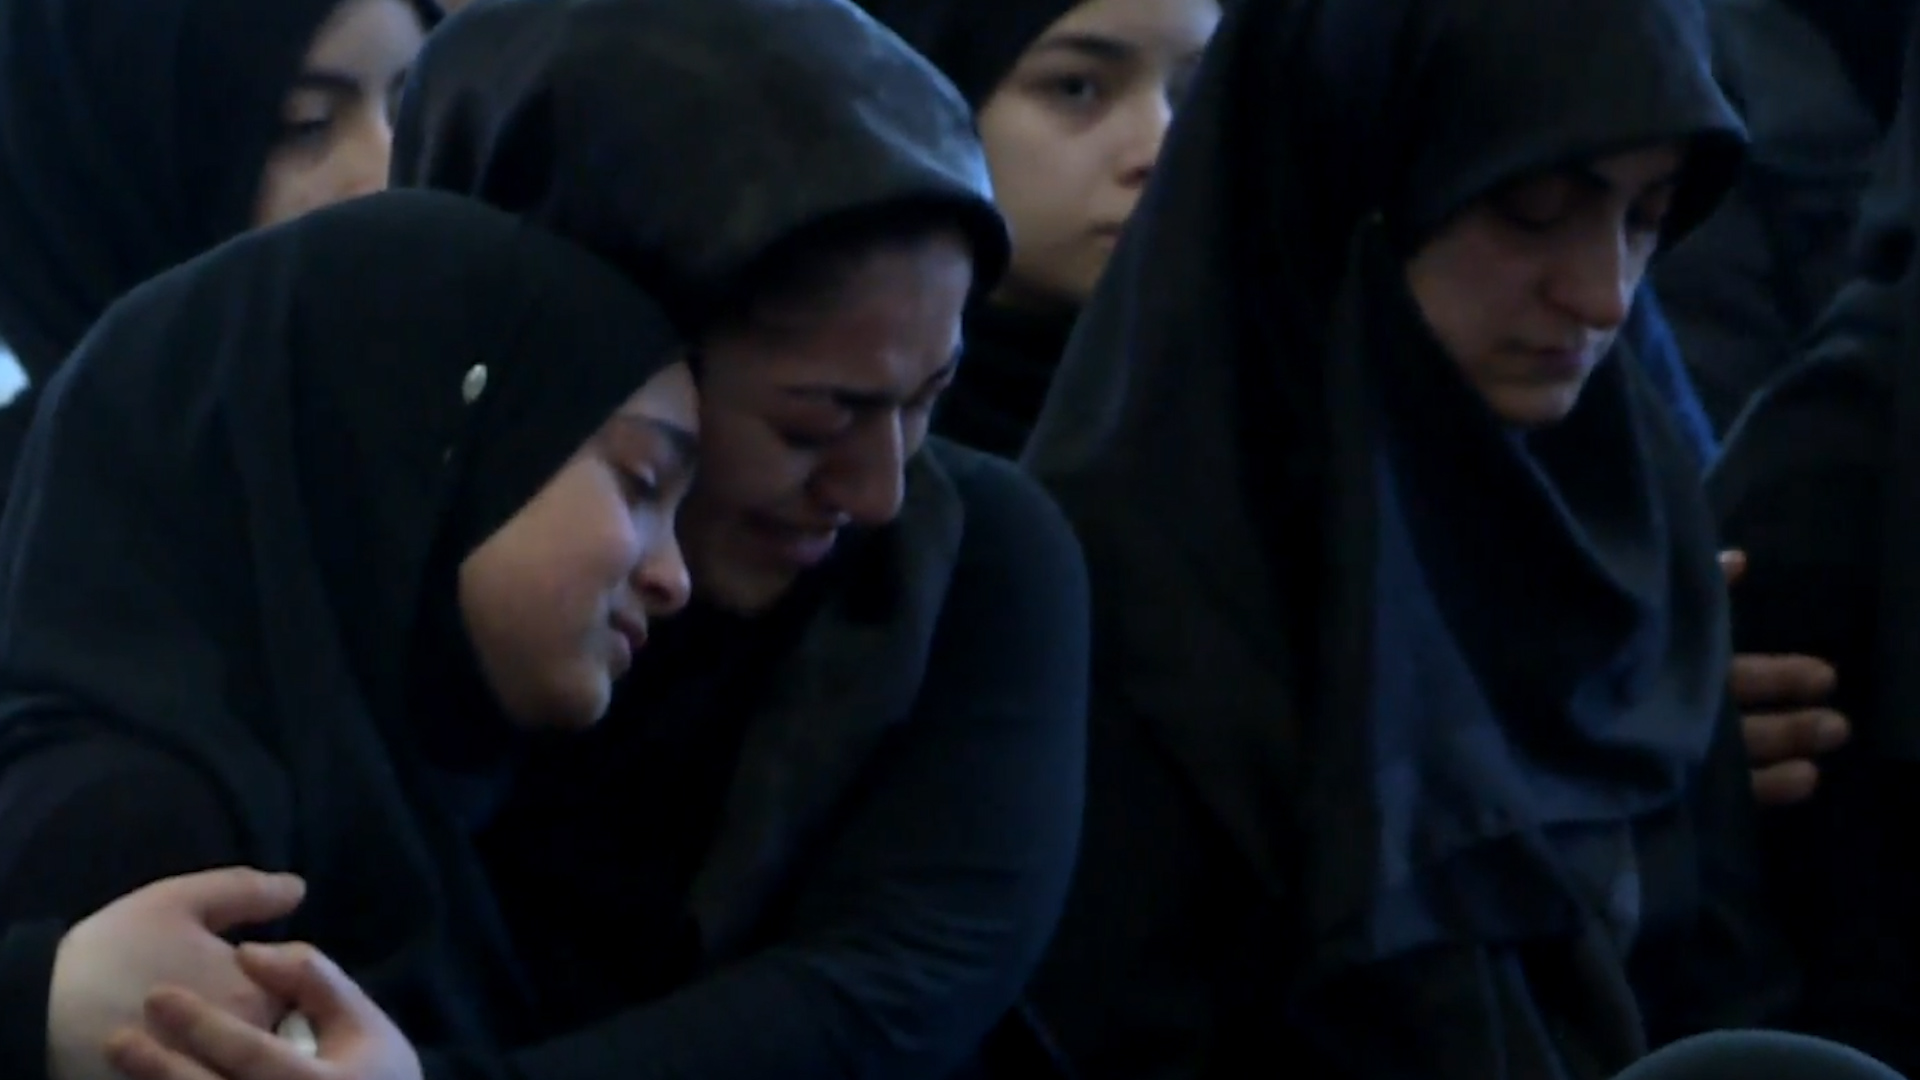 Mother, daughter buried in Canada after being killed in Iran plane crash